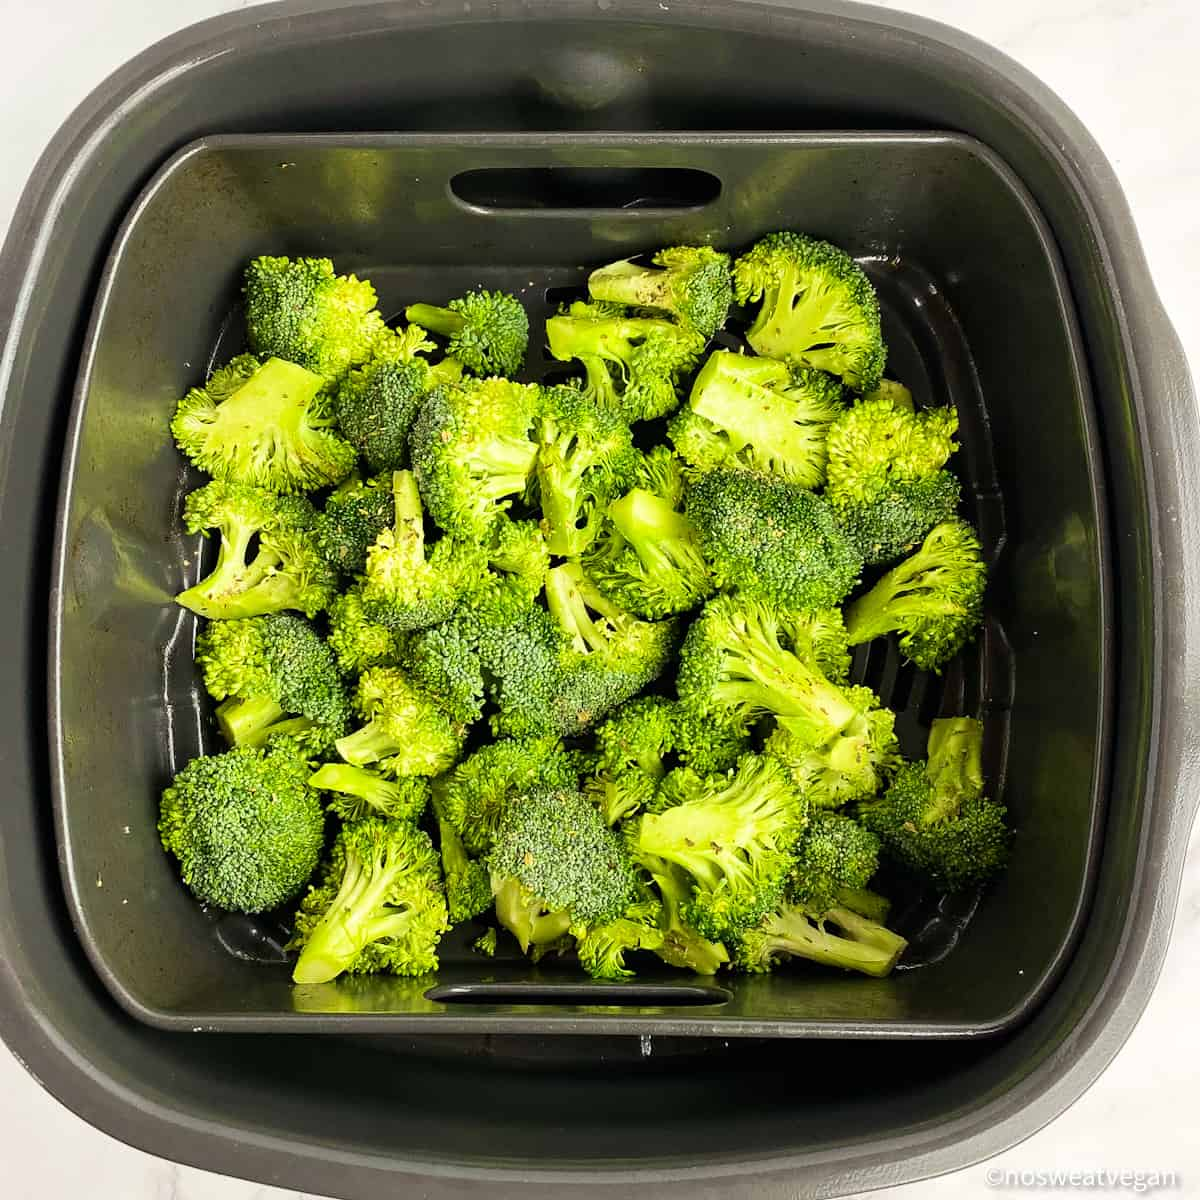 Fresh broccoli (uncooked) in the air fryer basket.